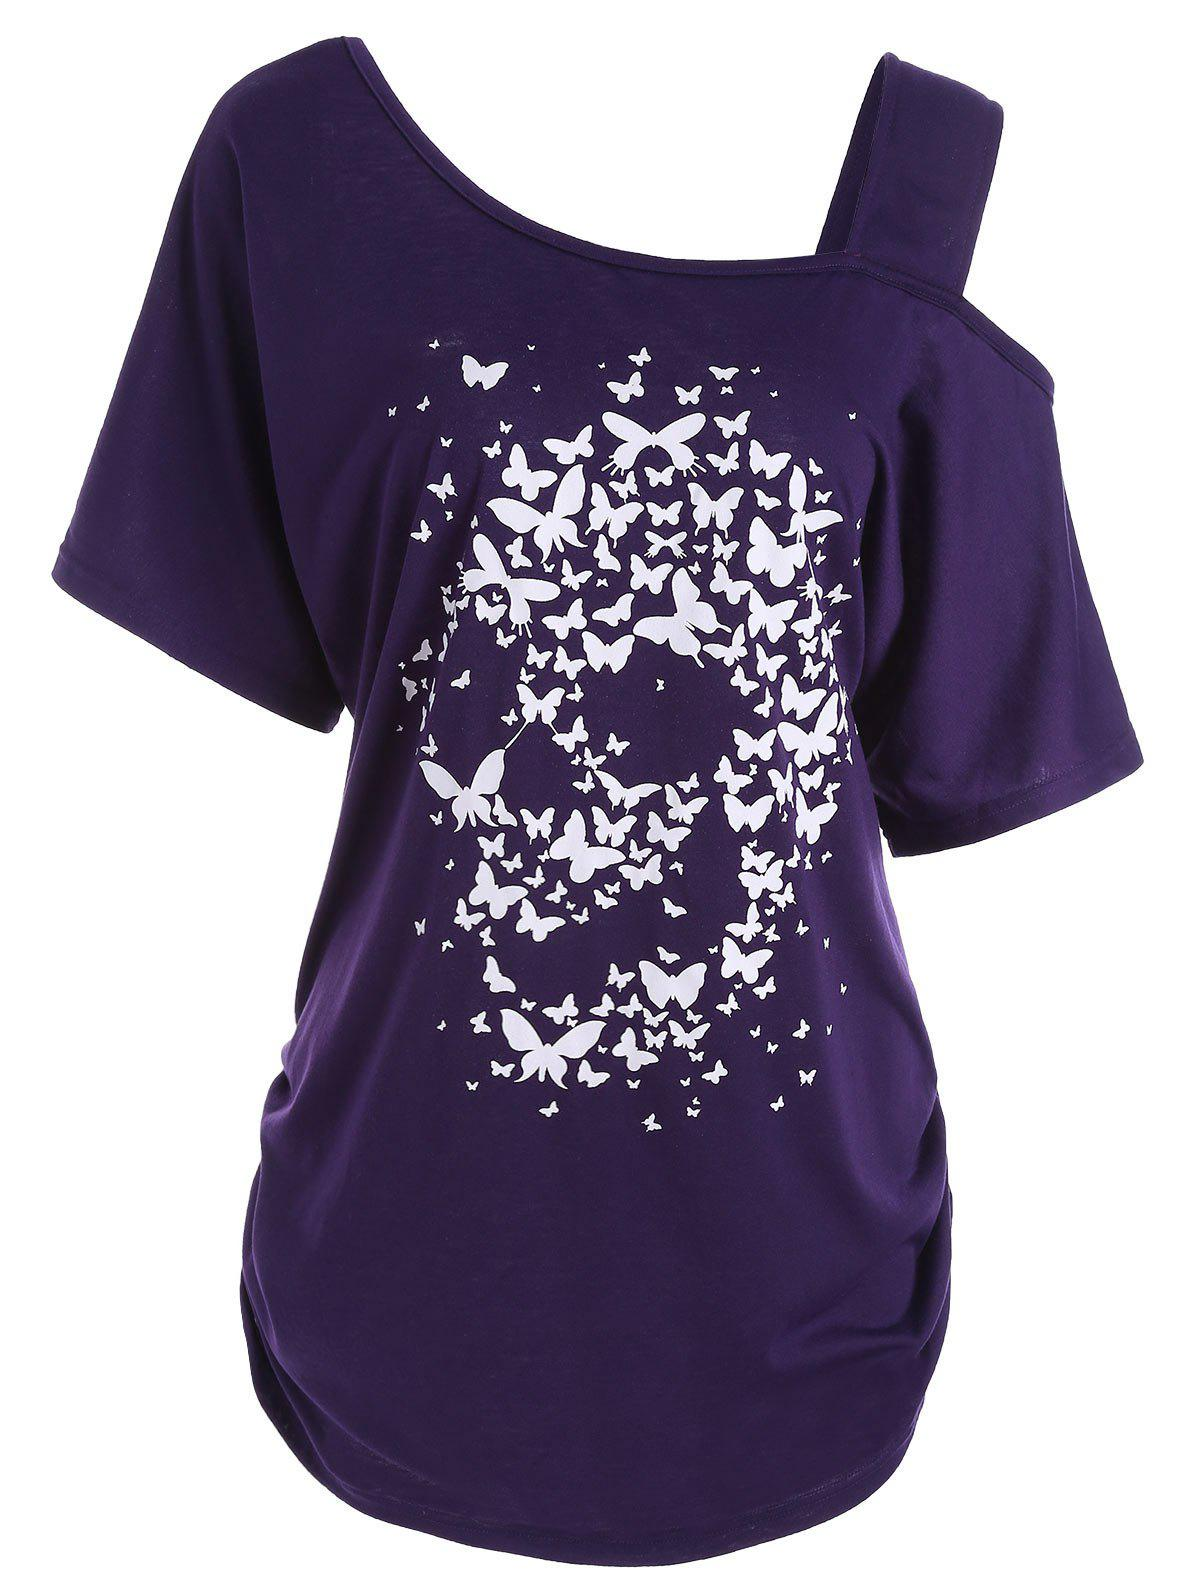 Store Skull Butterfly Print Skew Neck Plus Size Top